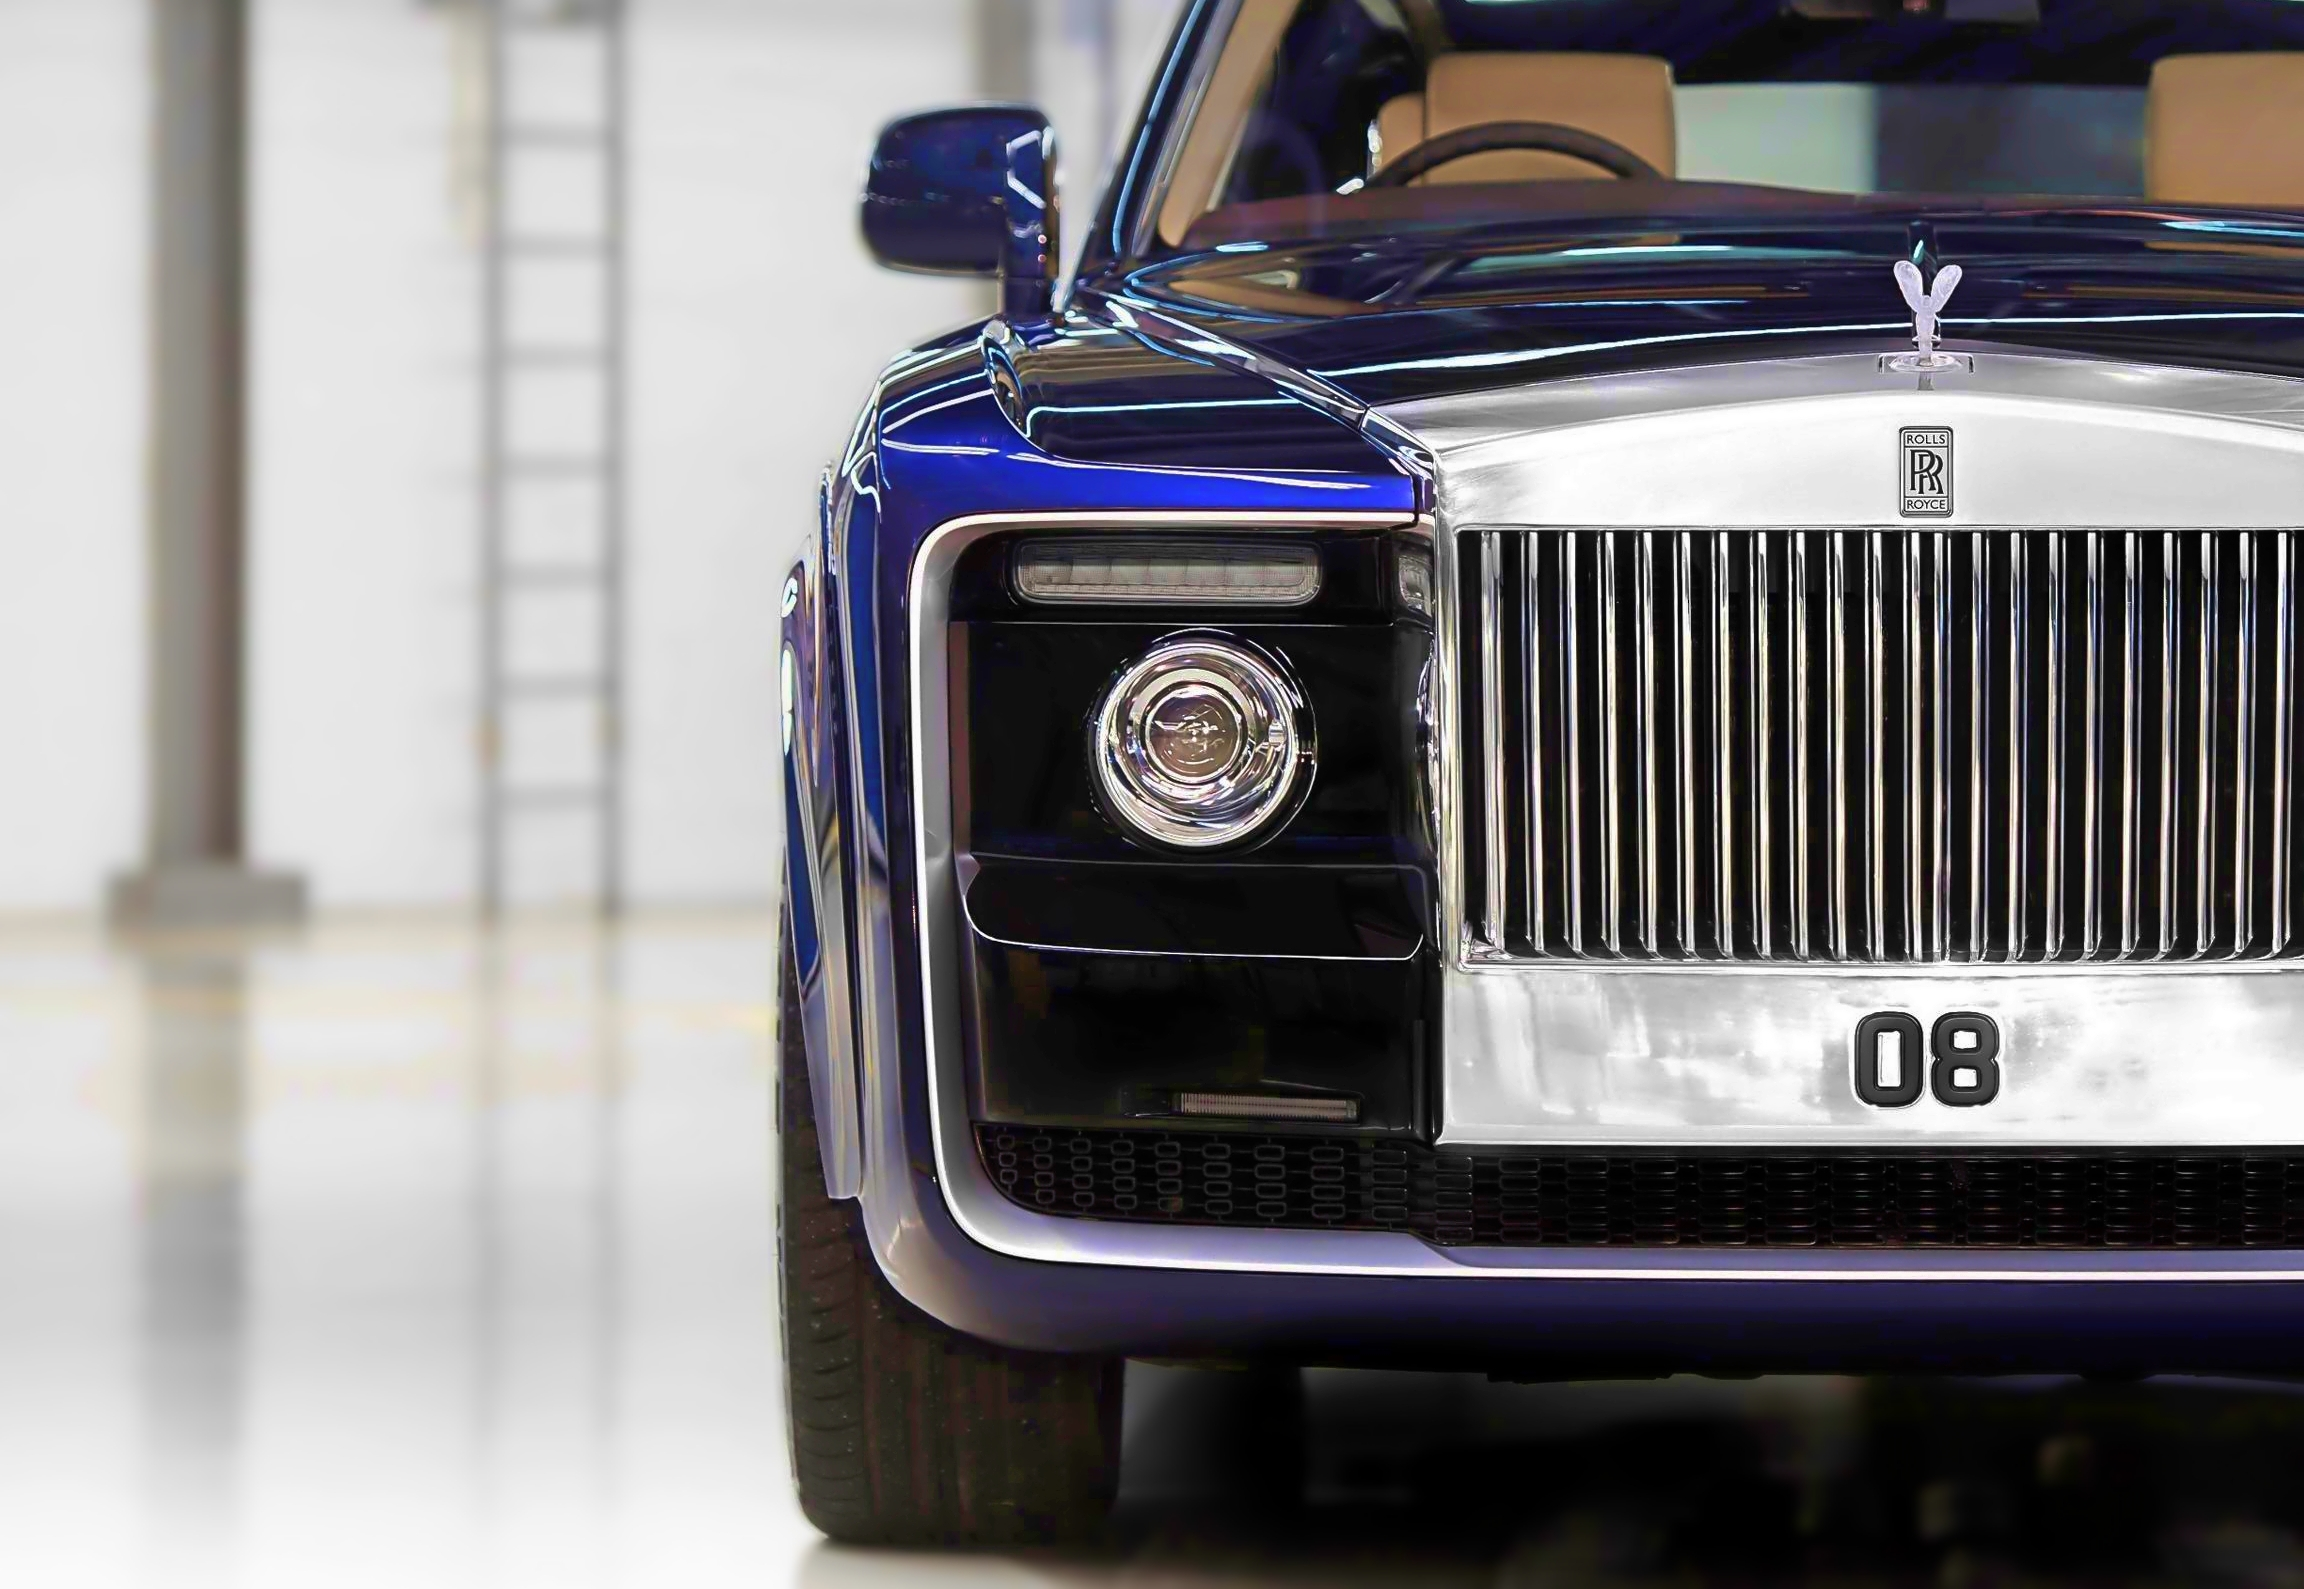 The Rolls Royce Sweptail is one of the most expensive cars in the world. Which was at number one in the world's most expensive cars of 2014. But in 2019, this car came at number three. Rolls Royce Motors Cars Limited has been and is building a large luxury car. The Rolls Royce Swaptel is the third most expensive car in the world.